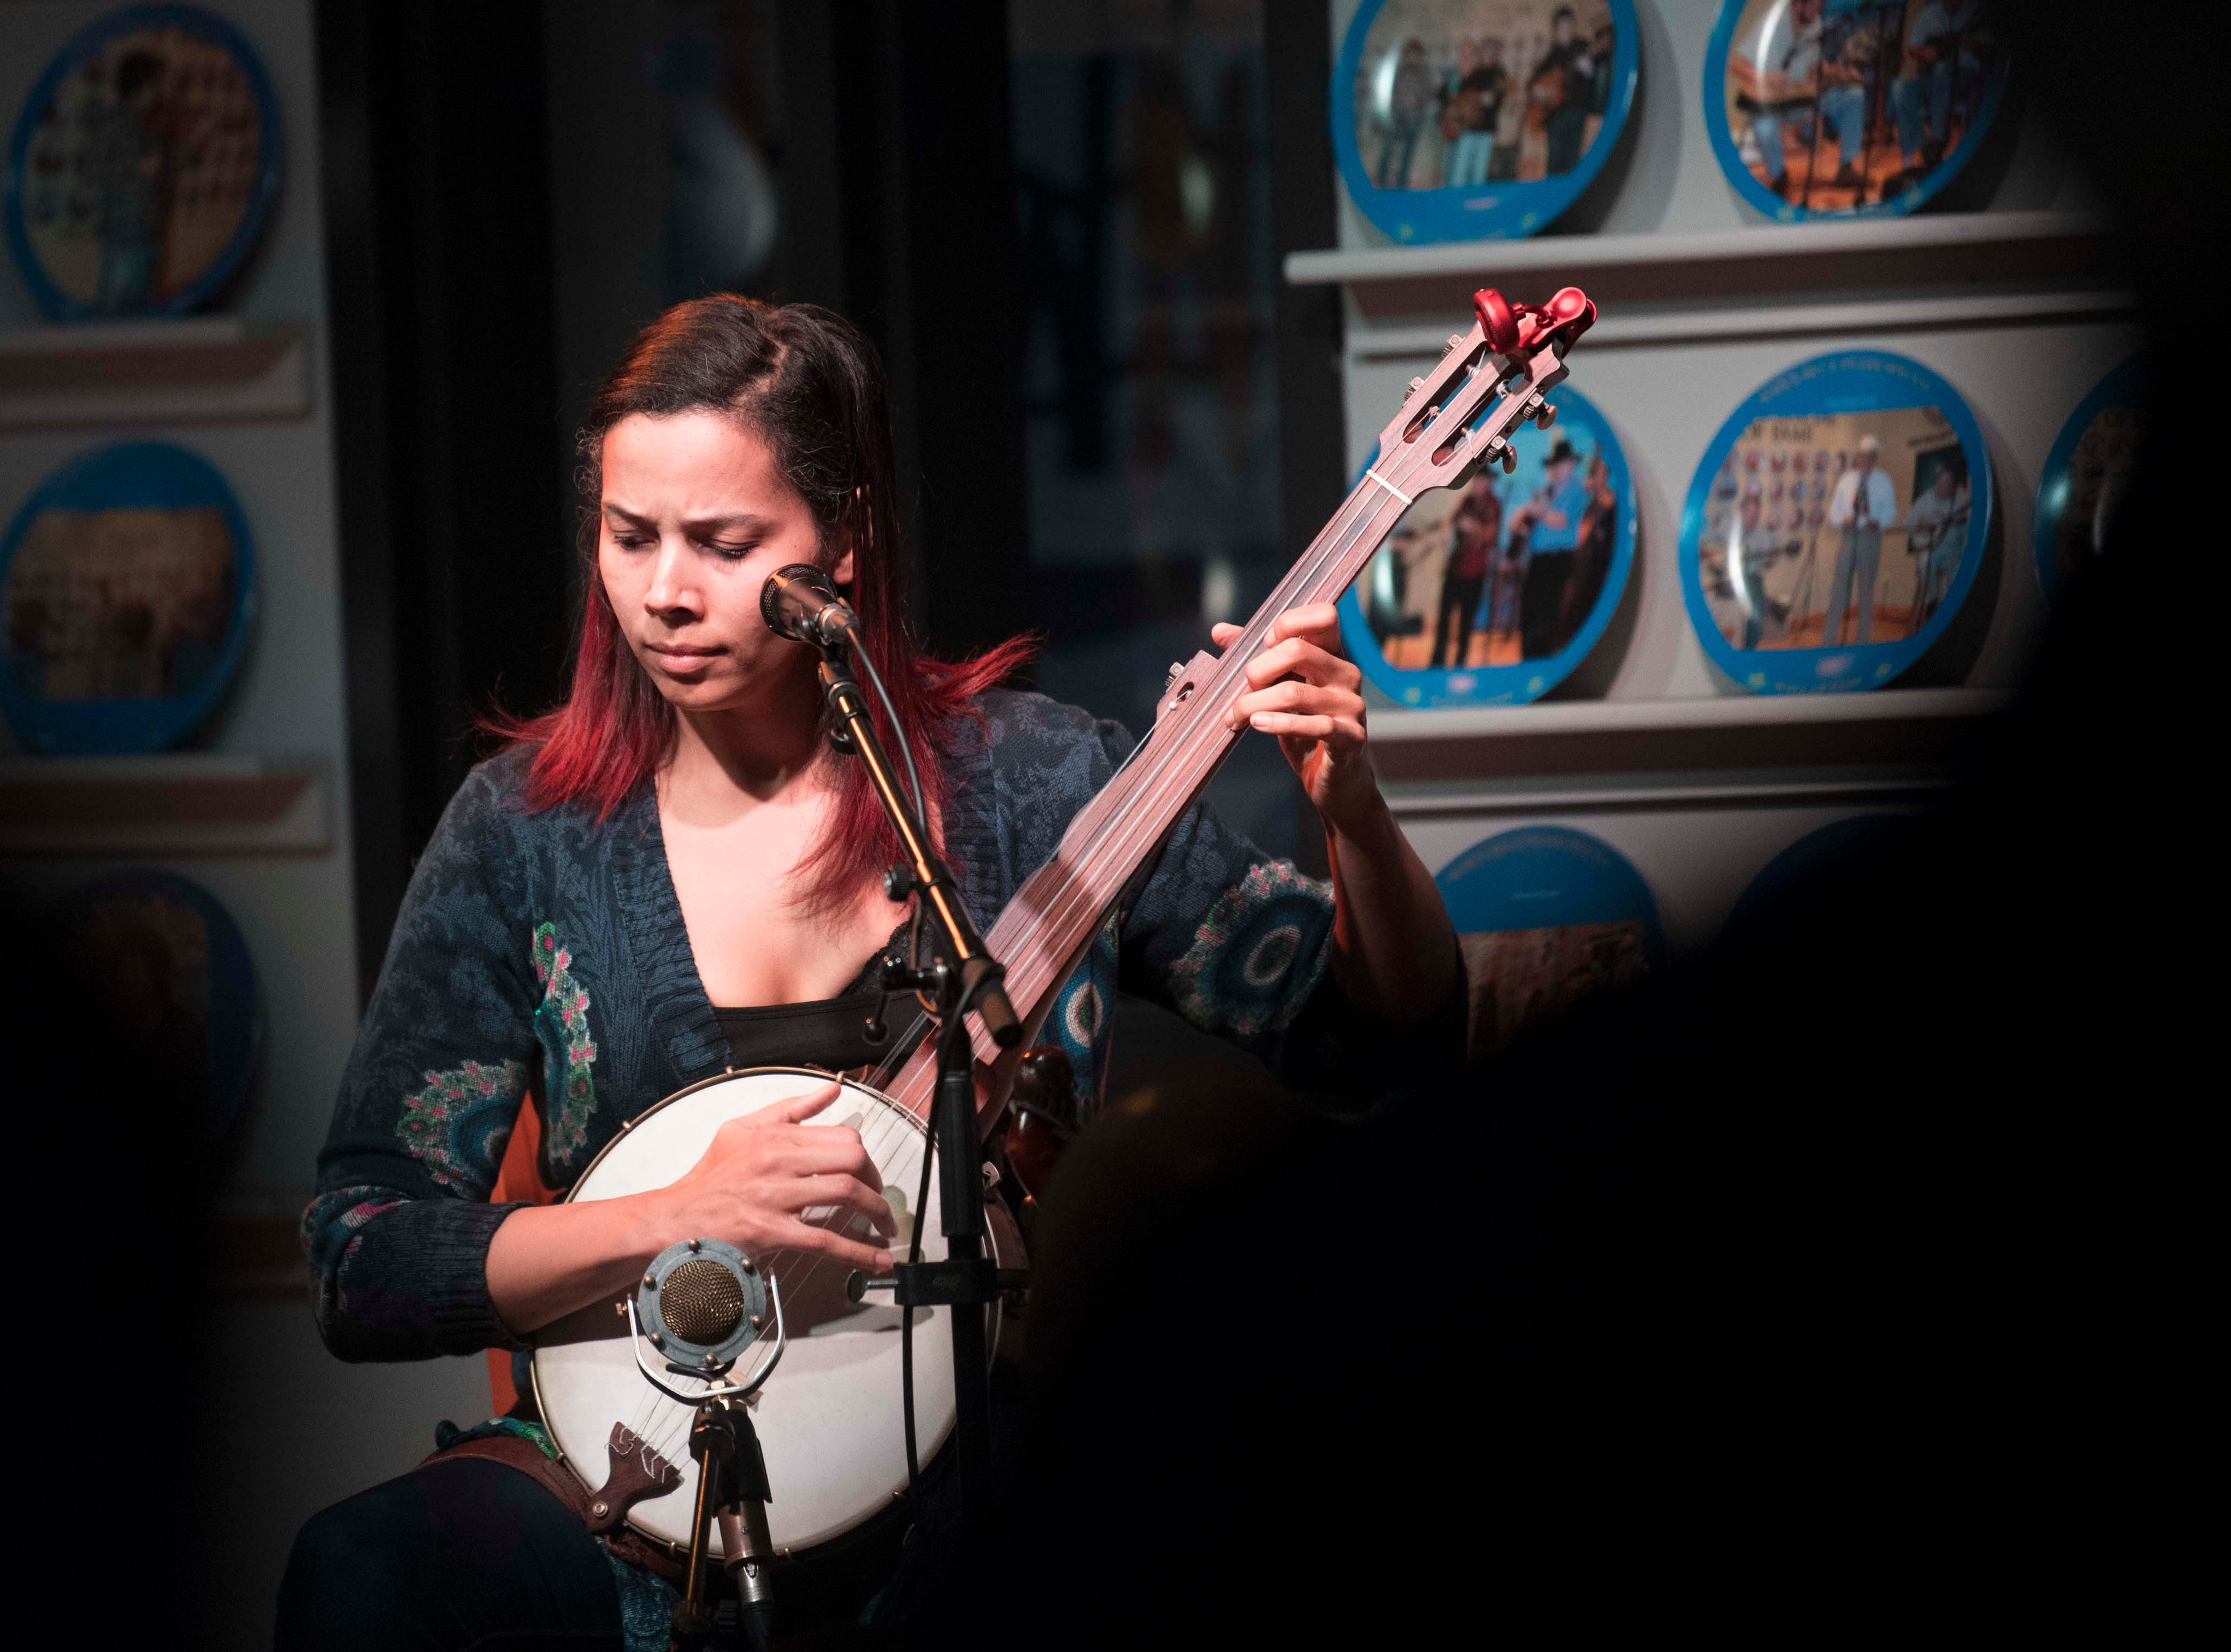 Rhiannon Giddens performs during the WDVX Blue Plate Special in downtown Knoxville Thursday, March 21, 2019. The concert is the first performances of the 2019 Big Ears festival.